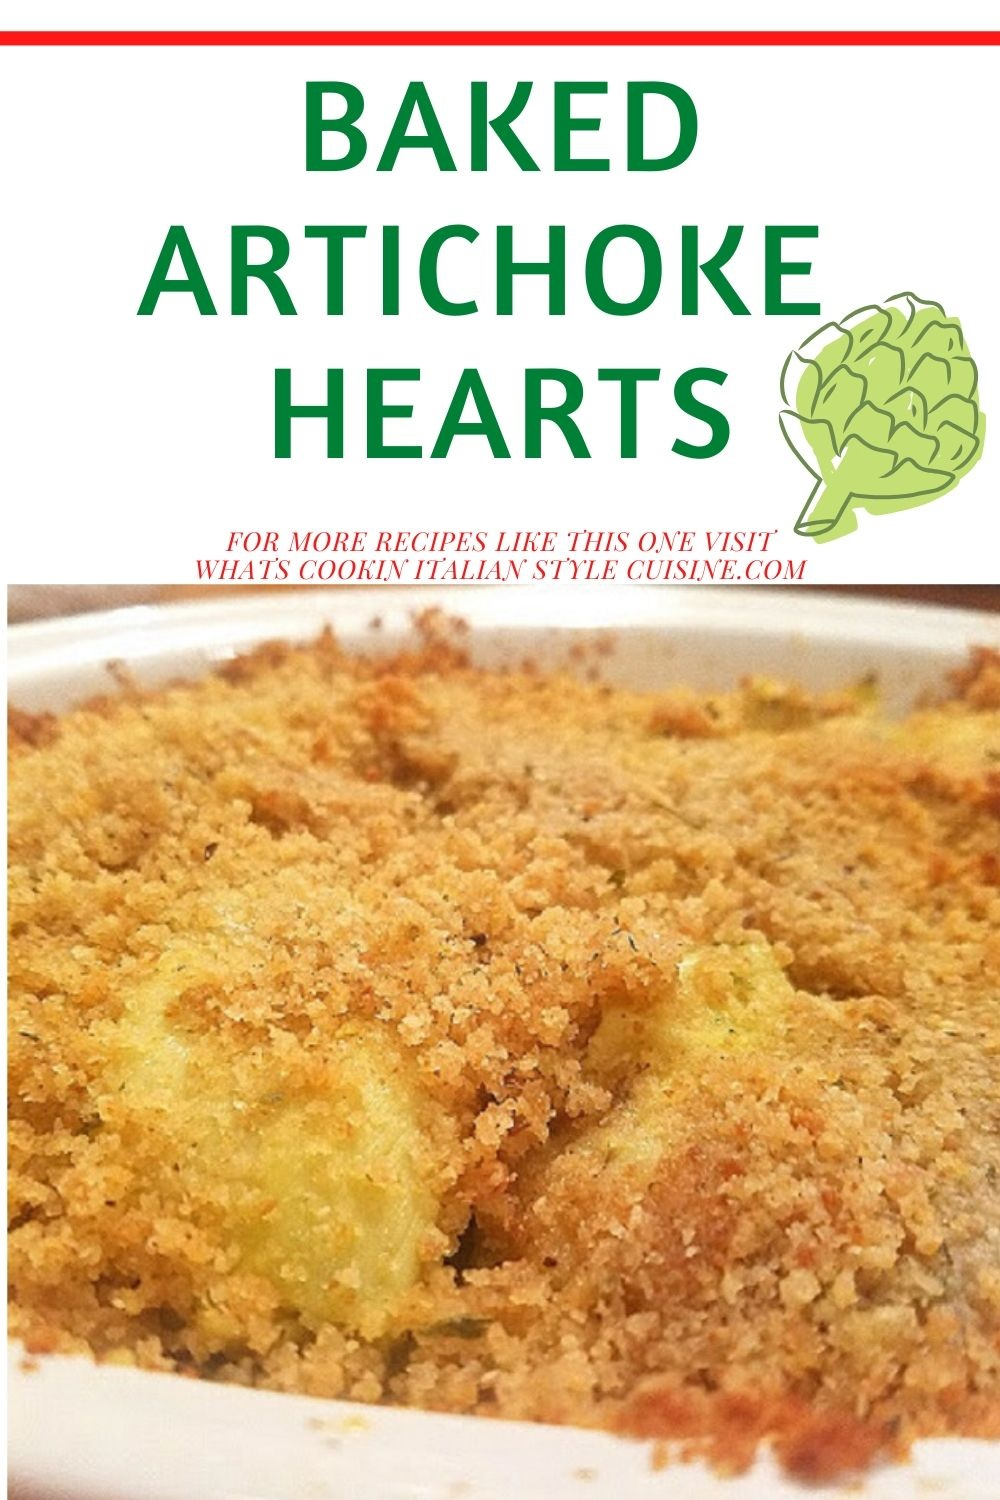 these are baked artichoke hearts that have been topped with the same stuffing in fresh artichokes with garlic and butter breadcrumbs